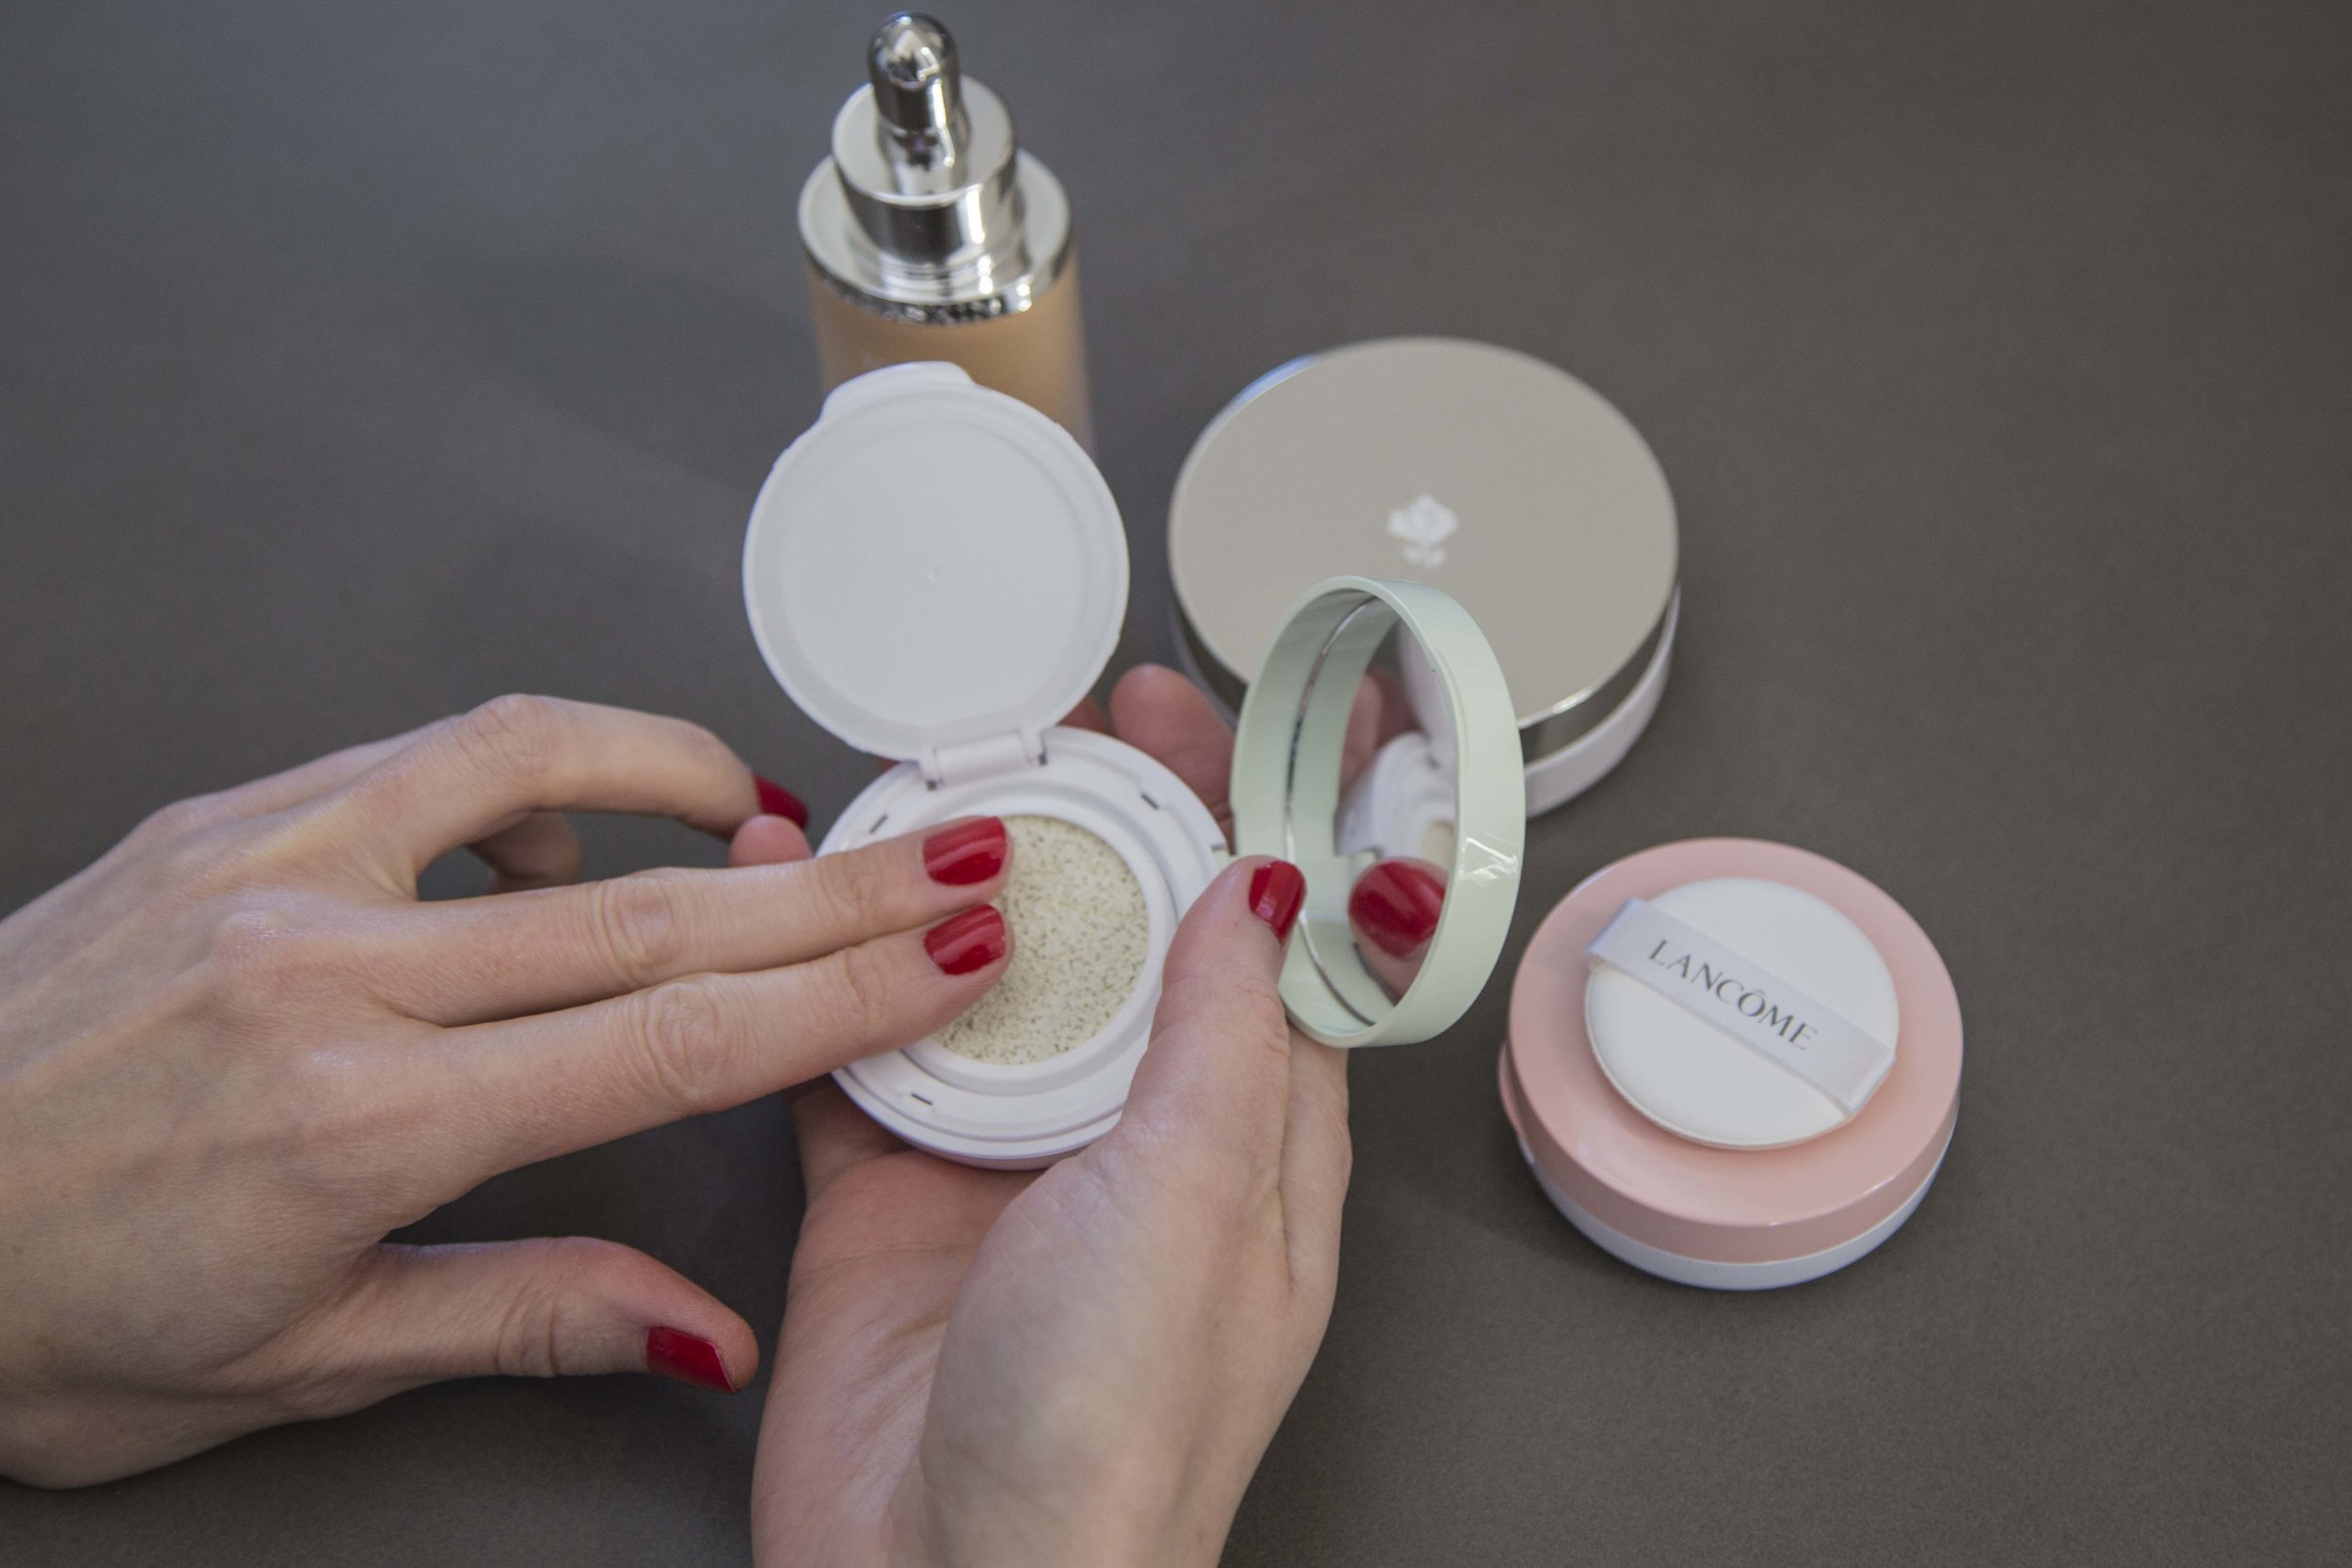 Simple Colour Correcting Concealers Guide;Lancôme Miracle CC Cushion Colour Correcting Primers in Green and Pinky Peach